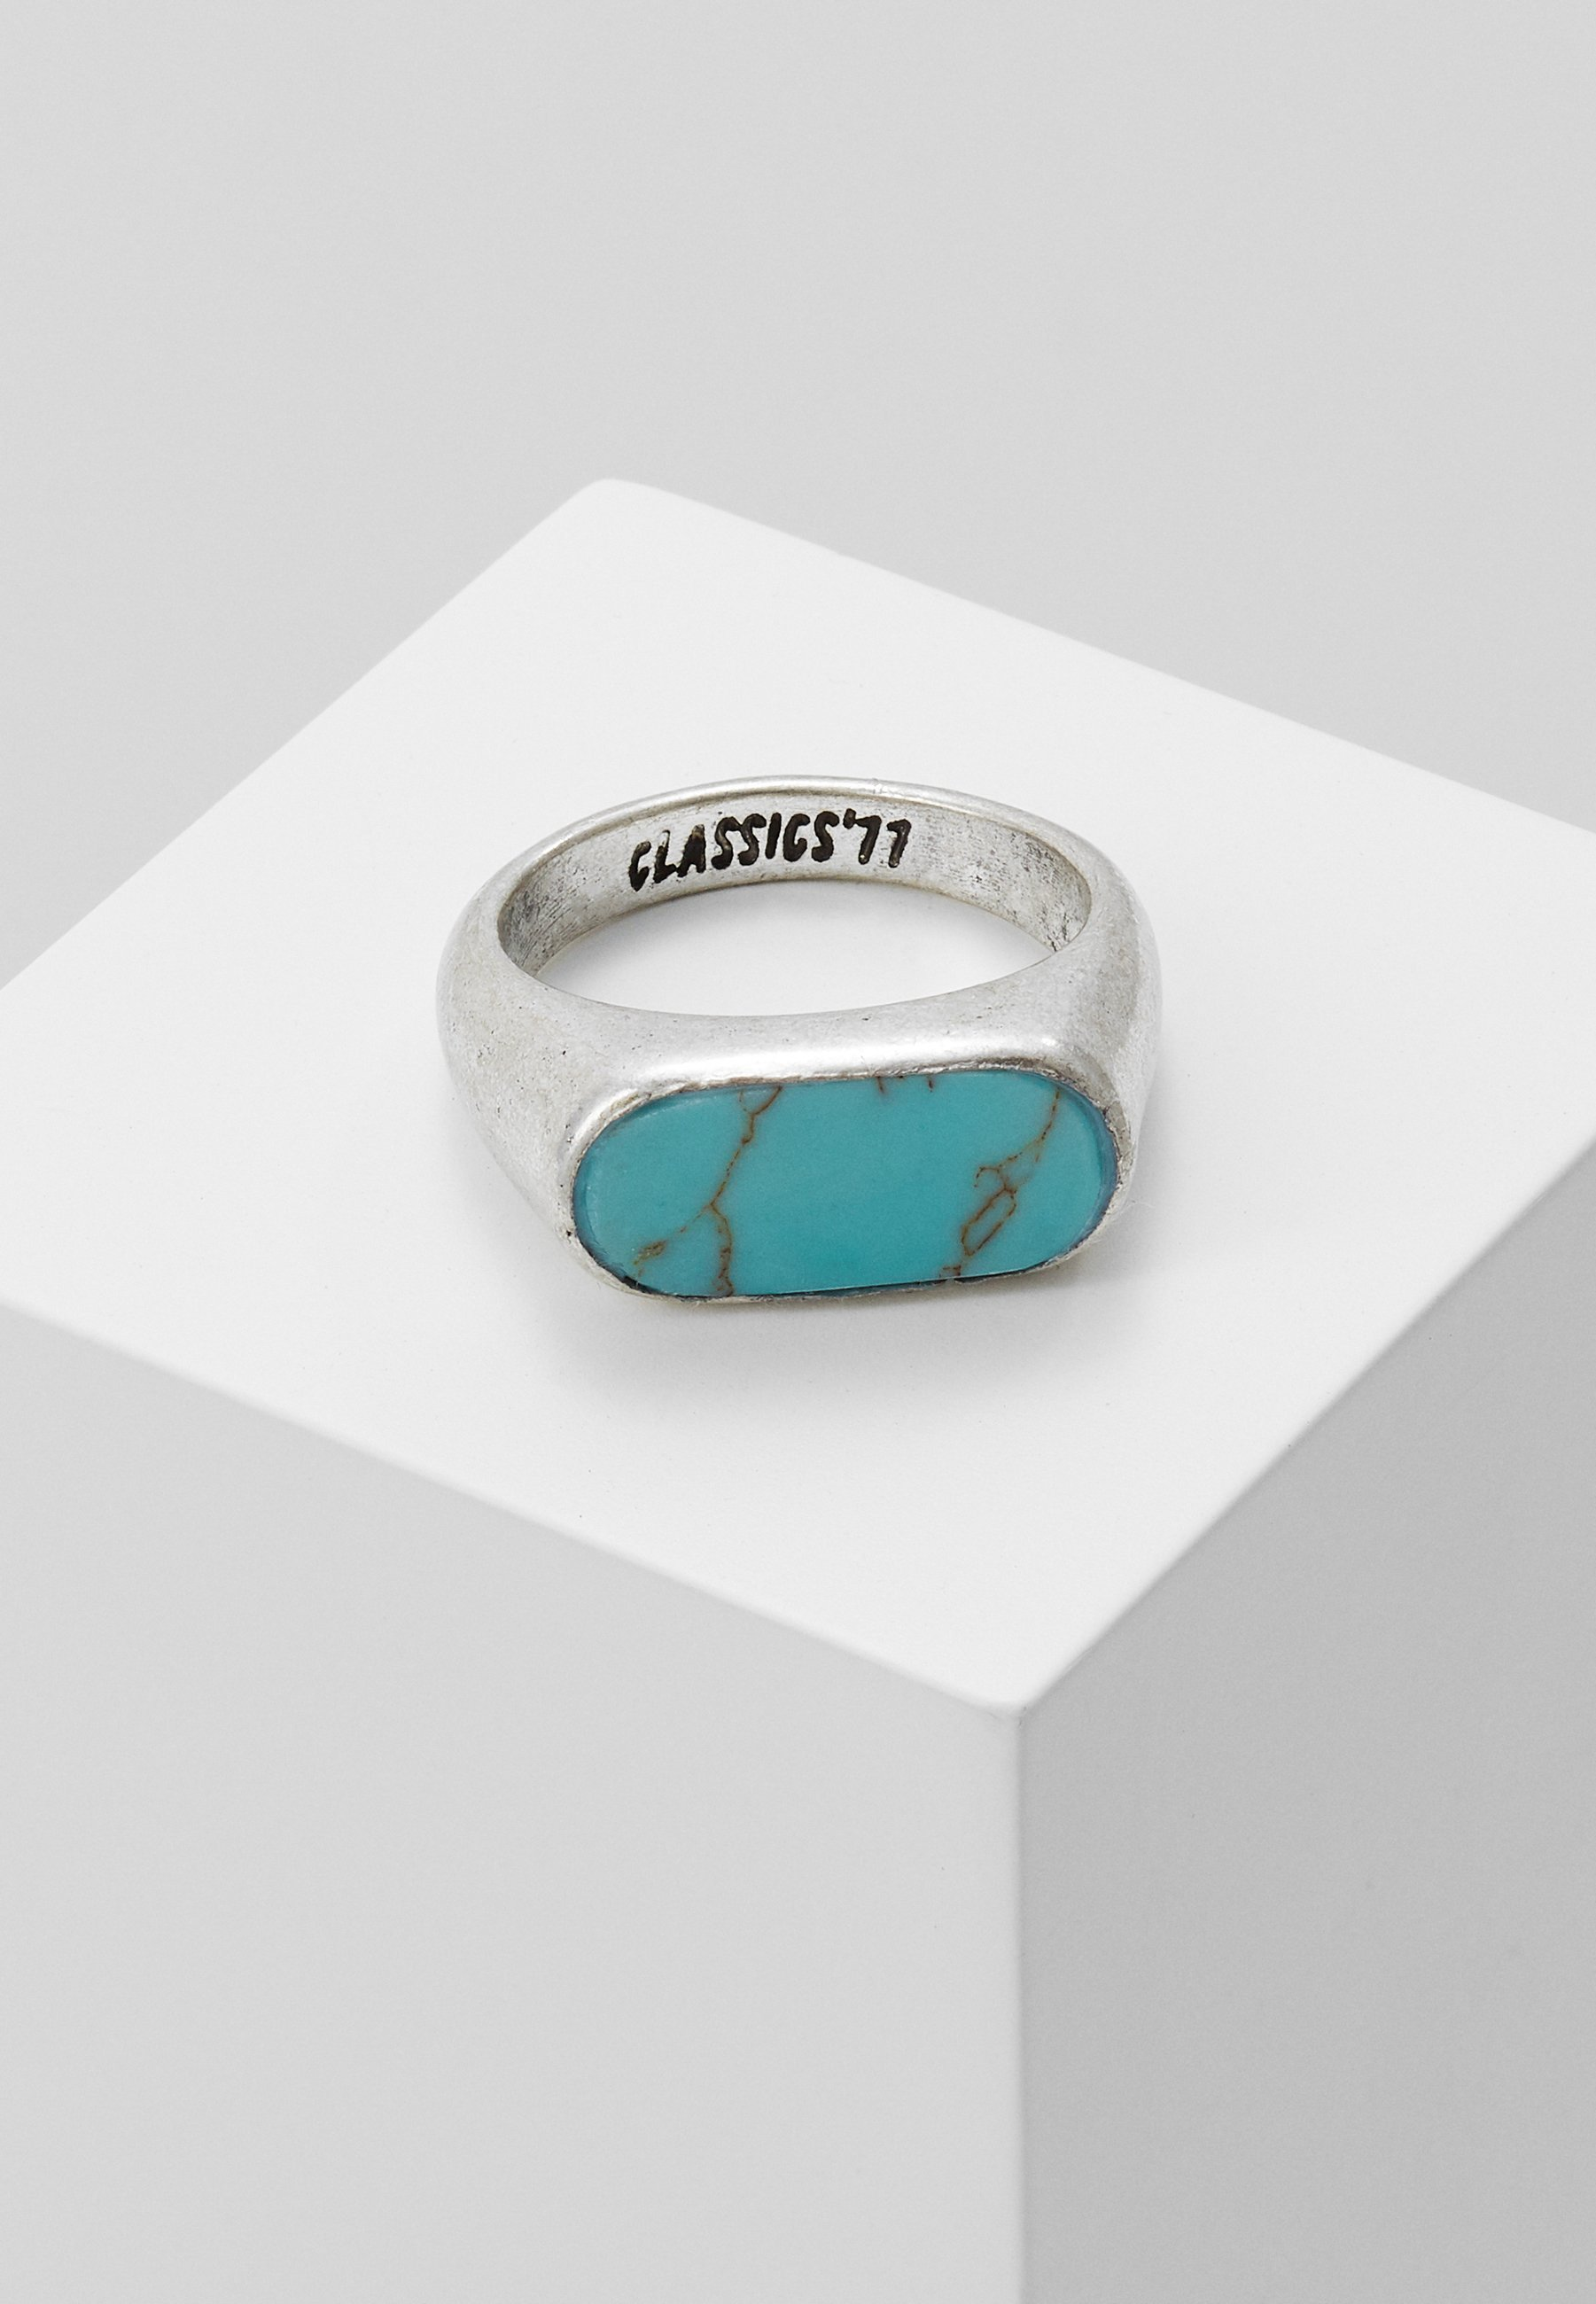 OVAL STONE Ring silver colouredturquoise